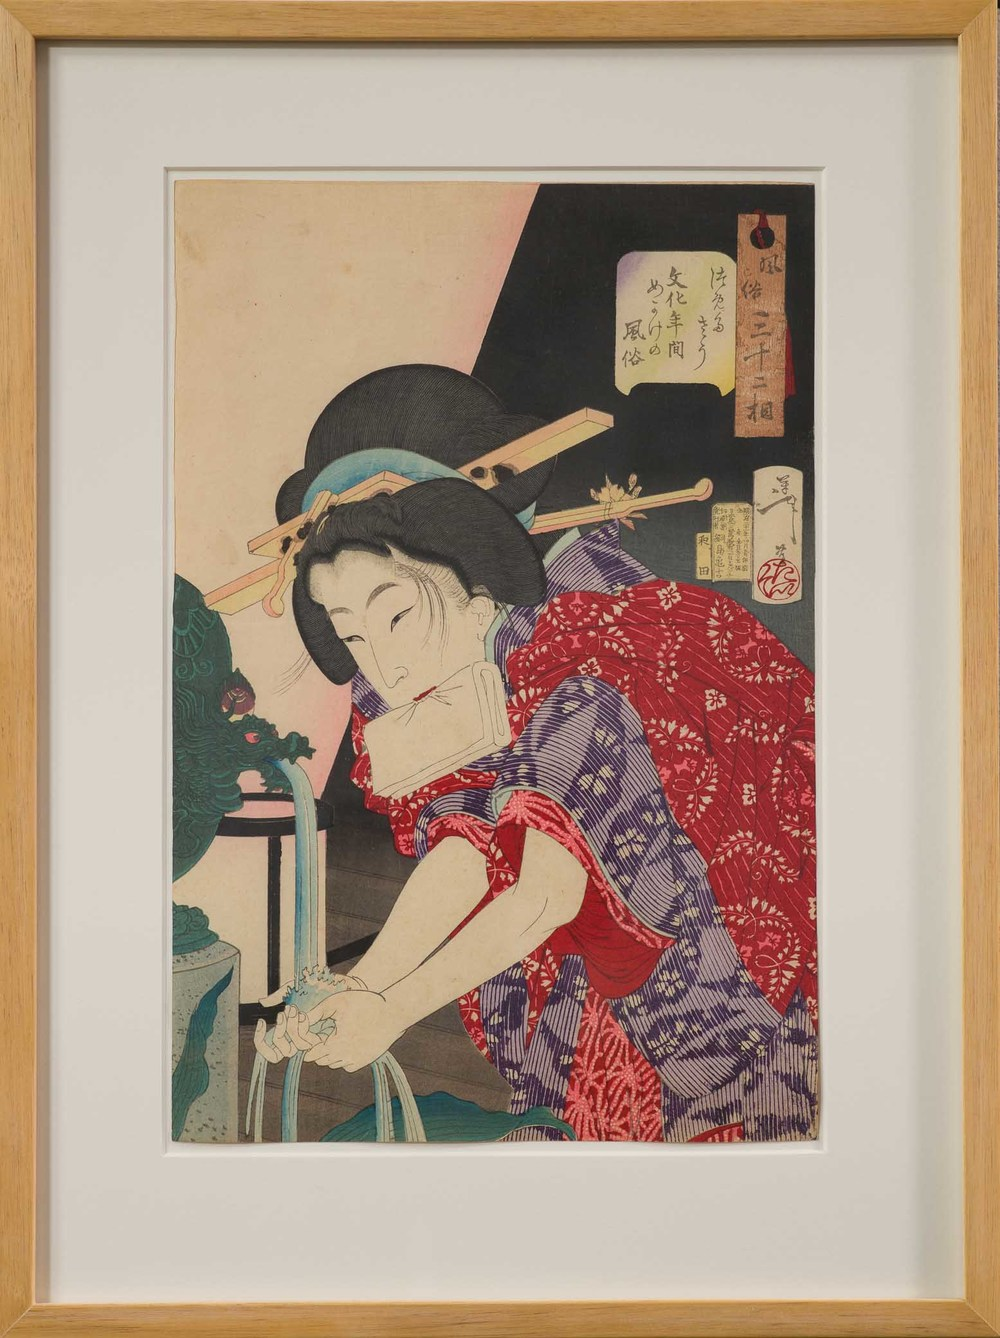 Tsukioka Yoshitoshi, from Thirty-Two Aspects of Women, 1888, Woodblock print, Gift of G.E. Robert Meyer, Polk Museum of Art Permanent Collection 1995.39.7